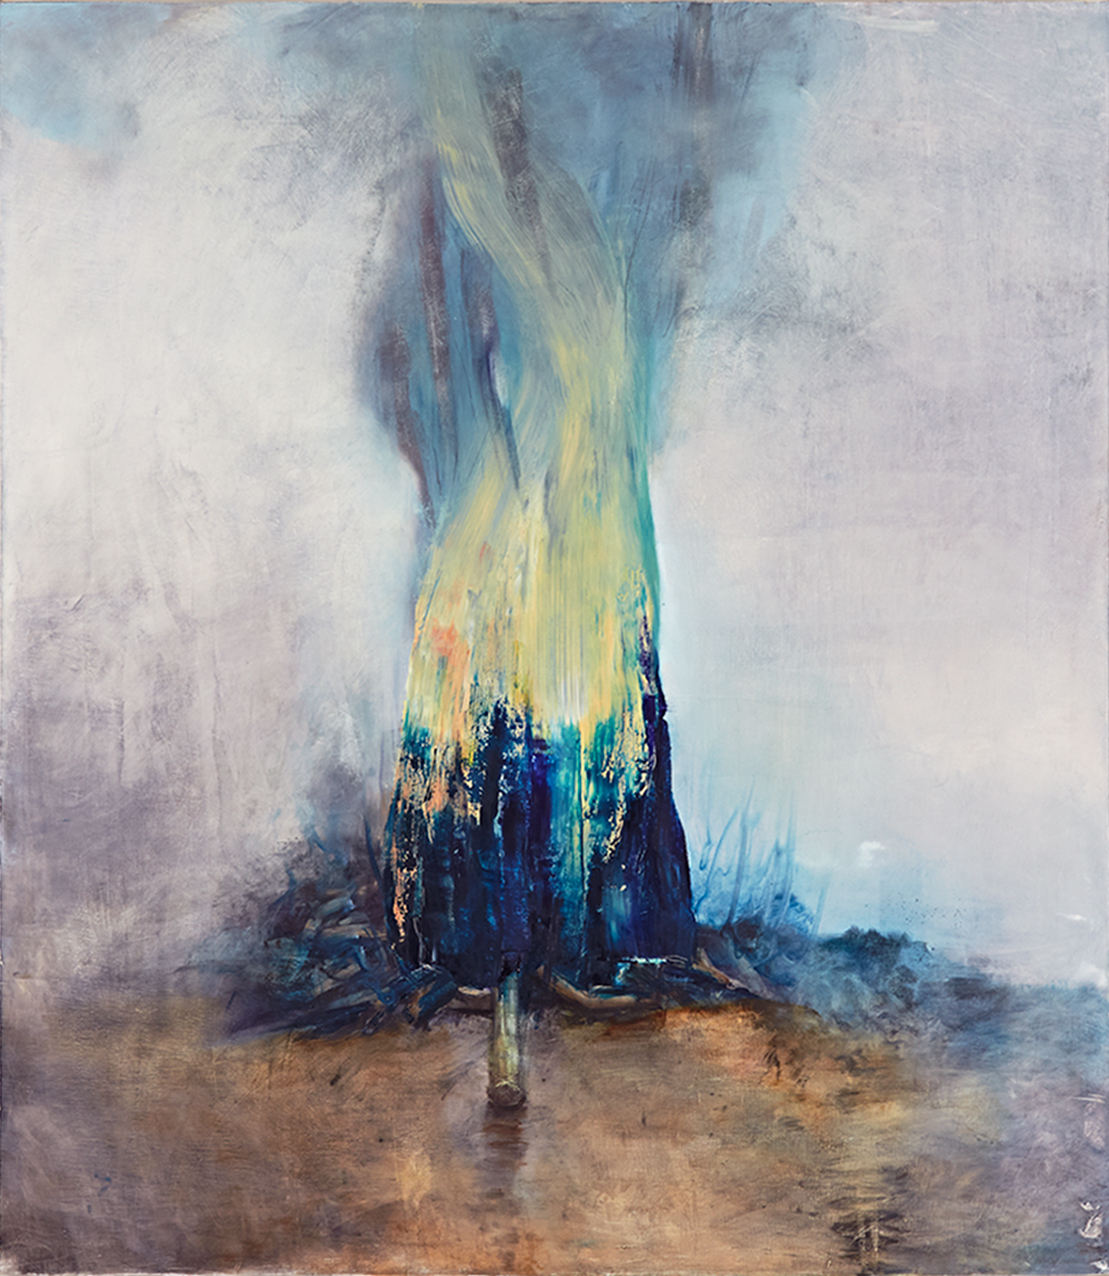 Flame / 2013, oil on canvas, 94 x 106 cm